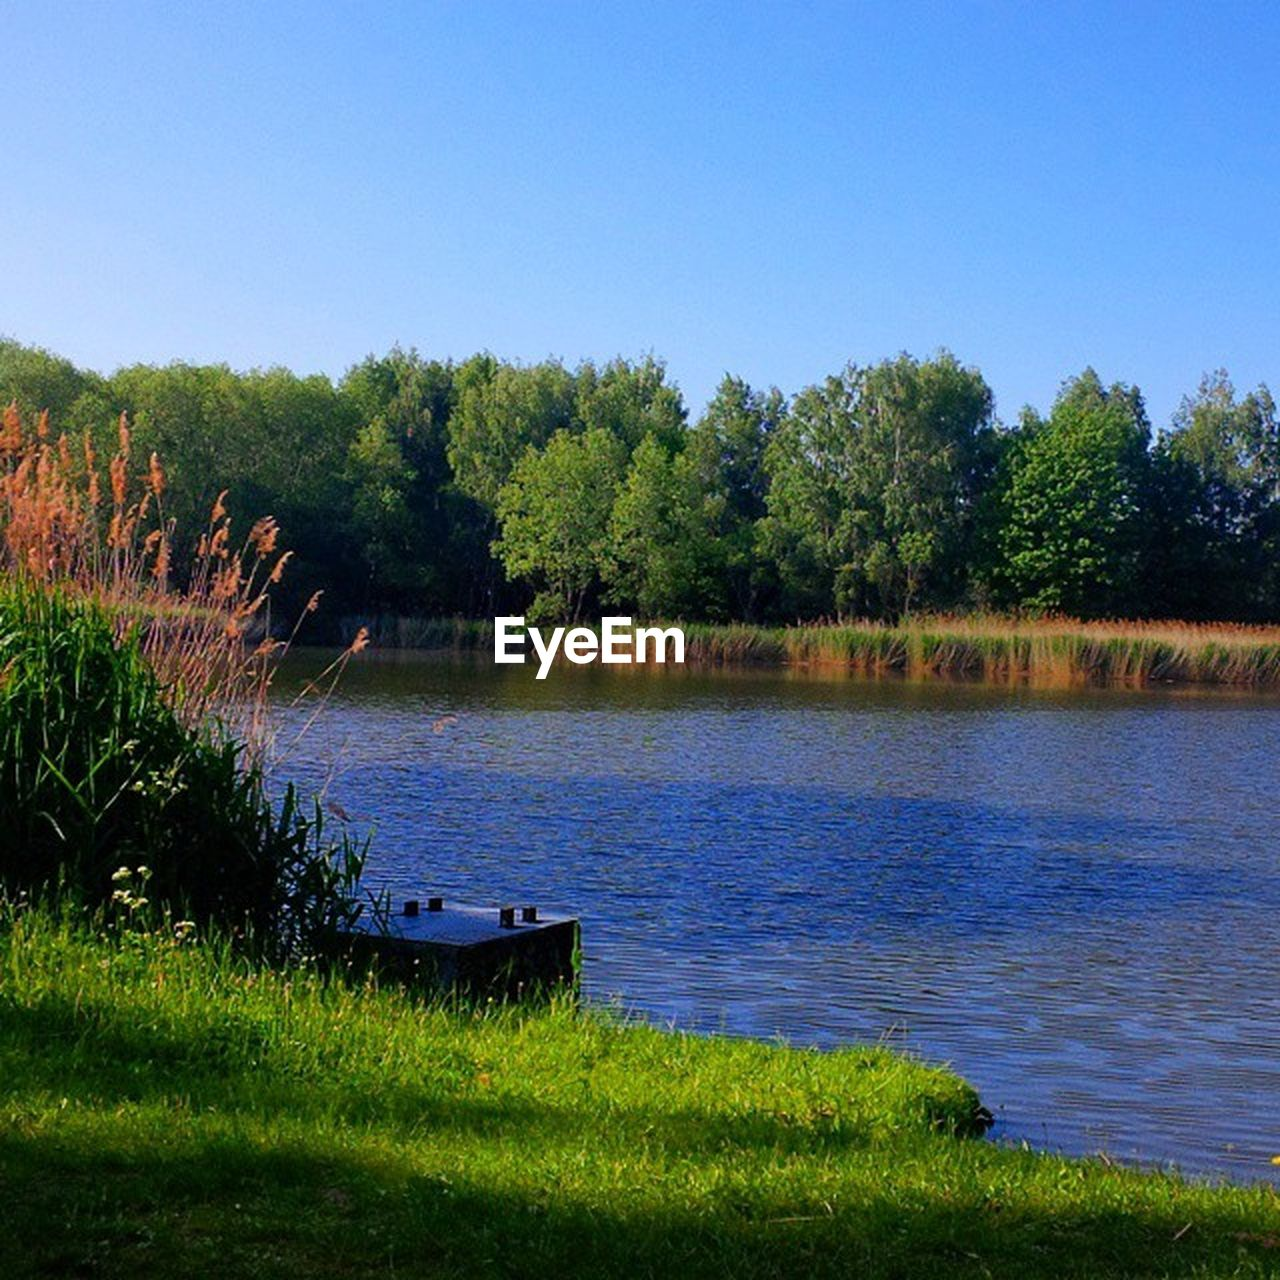 lake, tree, water, nature, tranquility, beauty in nature, grass, tranquil scene, scenics, no people, outdoors, growth, day, clear sky, sky